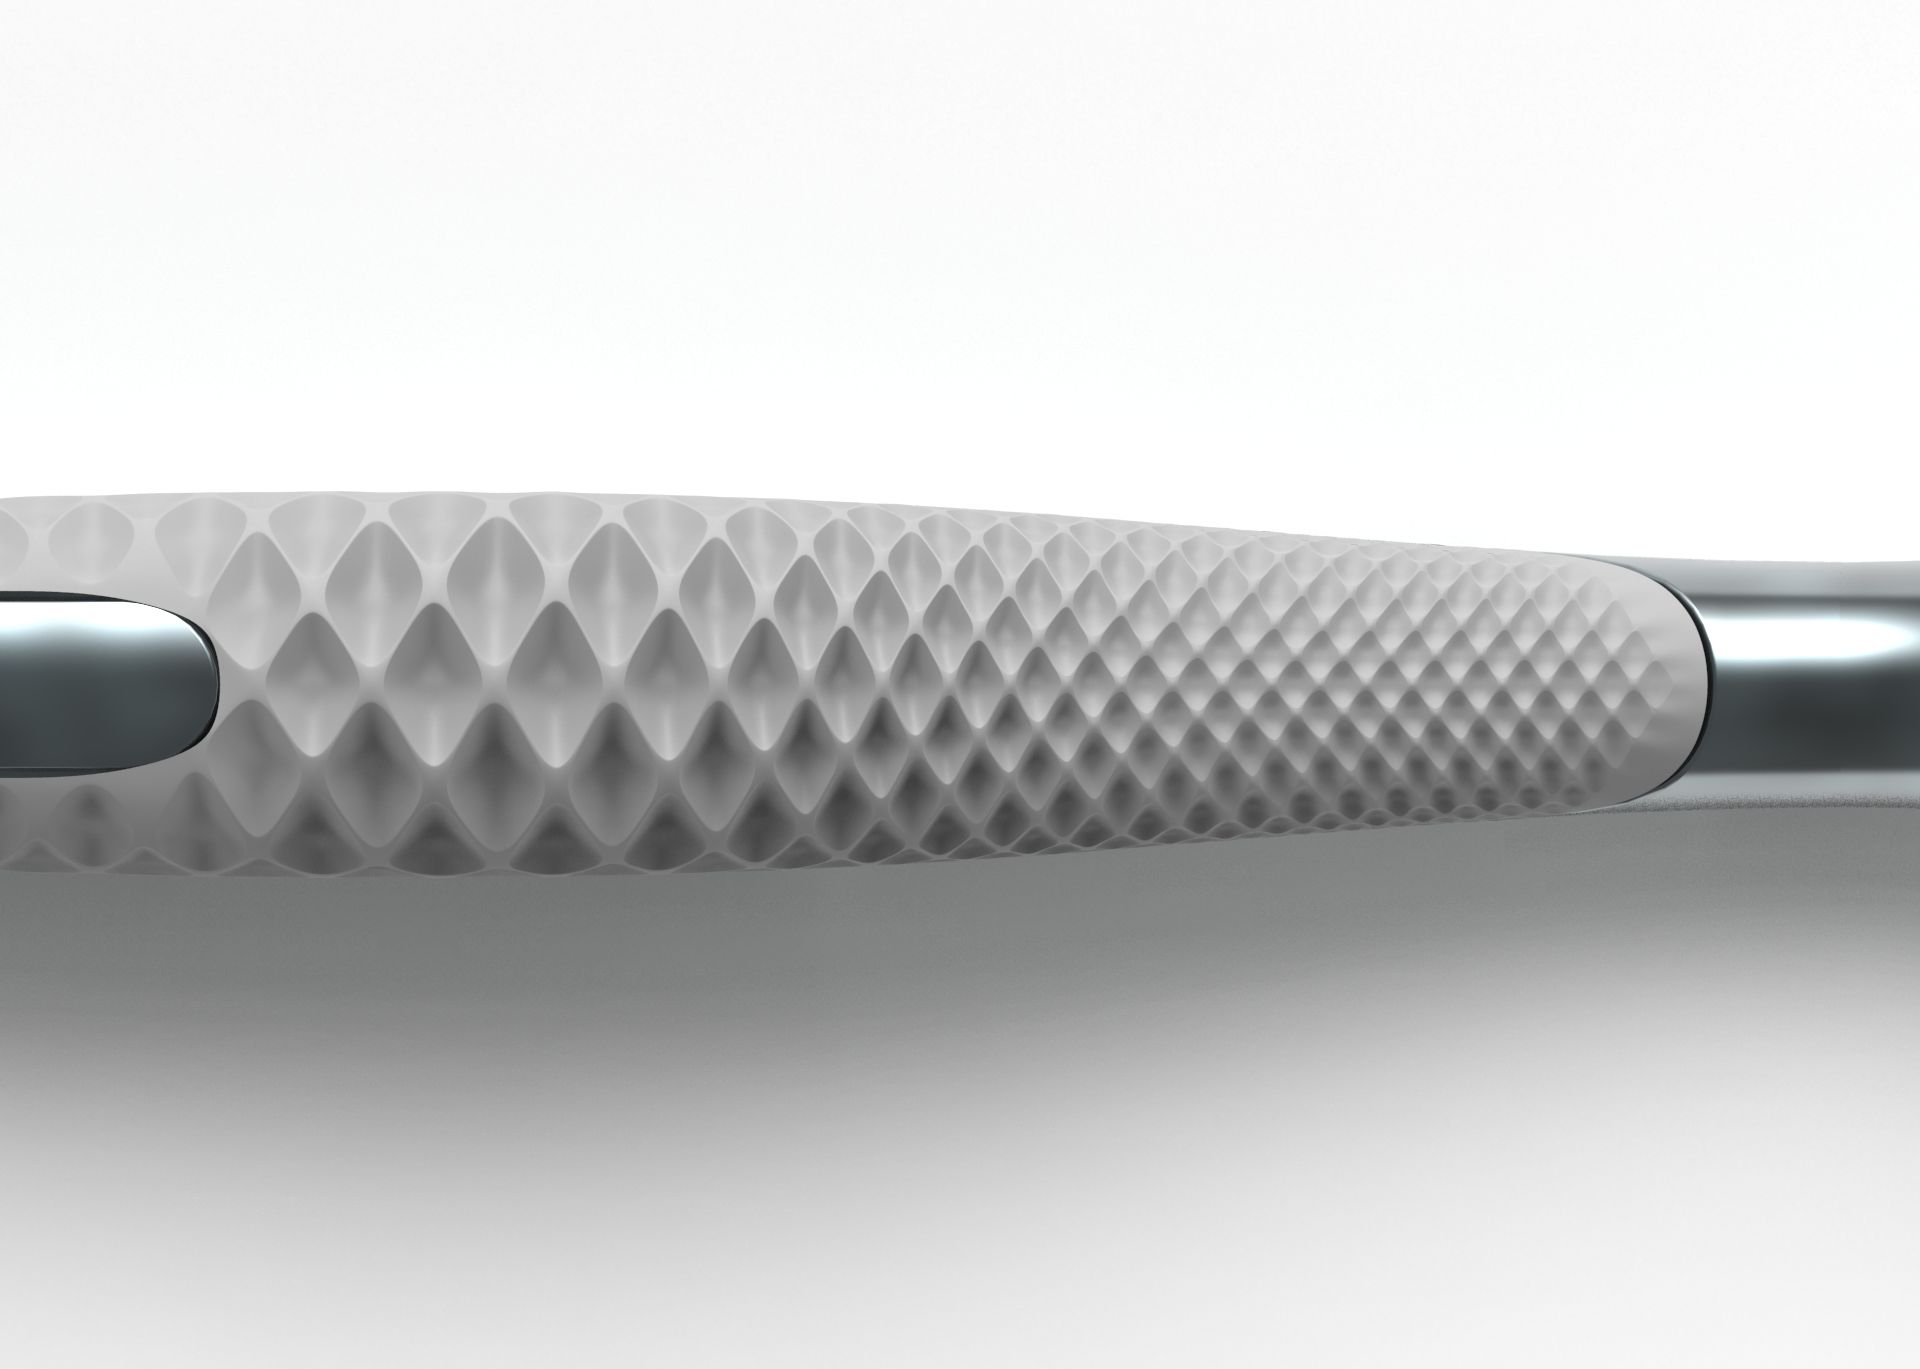 011115_PERFORMANCE HANDLE_MOCK UP.125.png